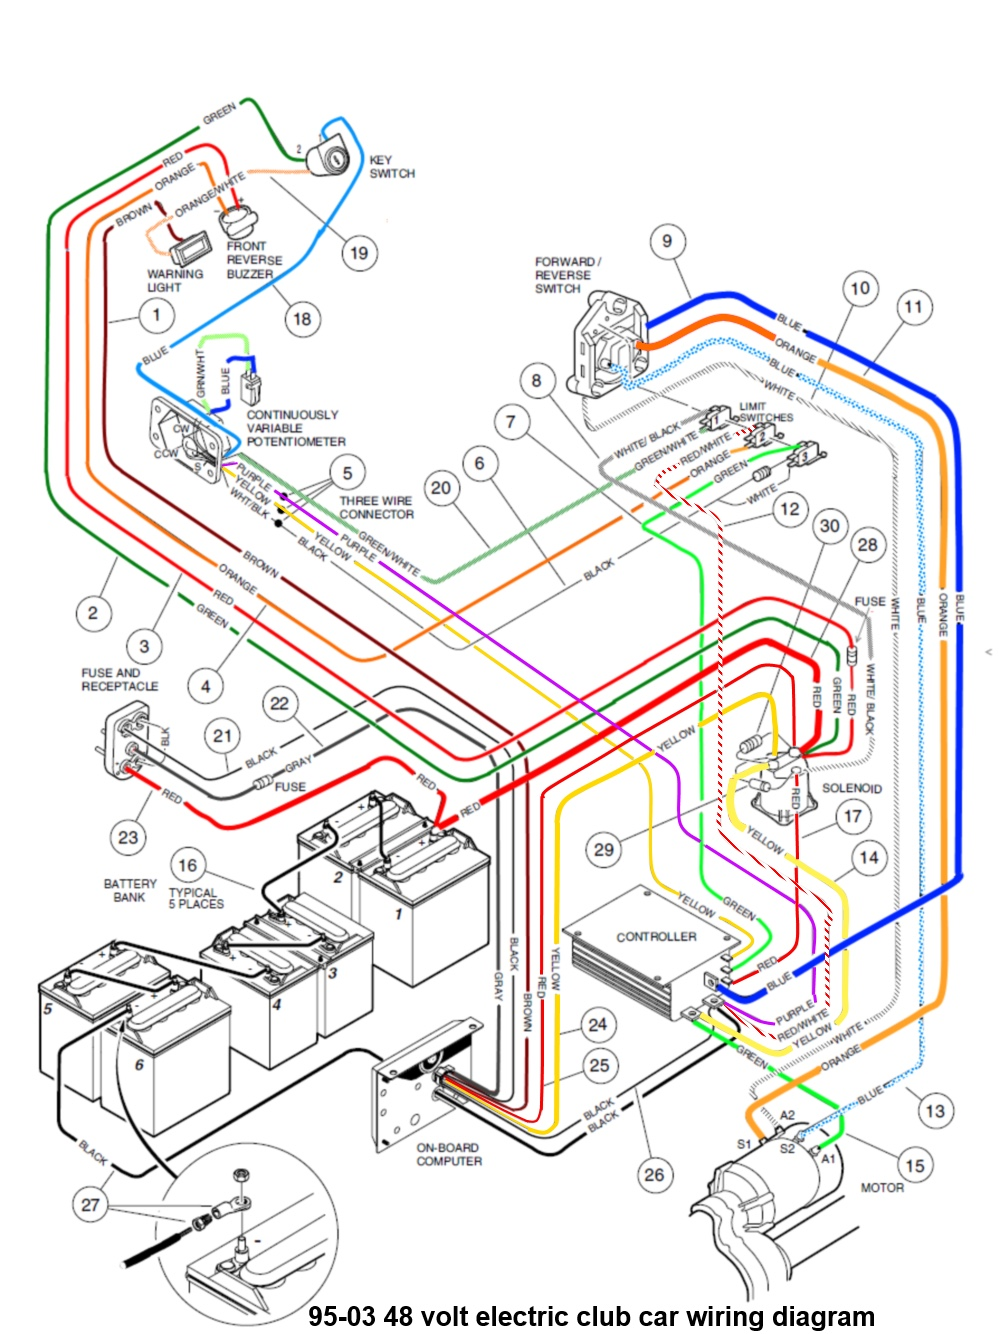 club car 48 volt solenoid wiring diagram club car top speed doesn't seem right - page 2